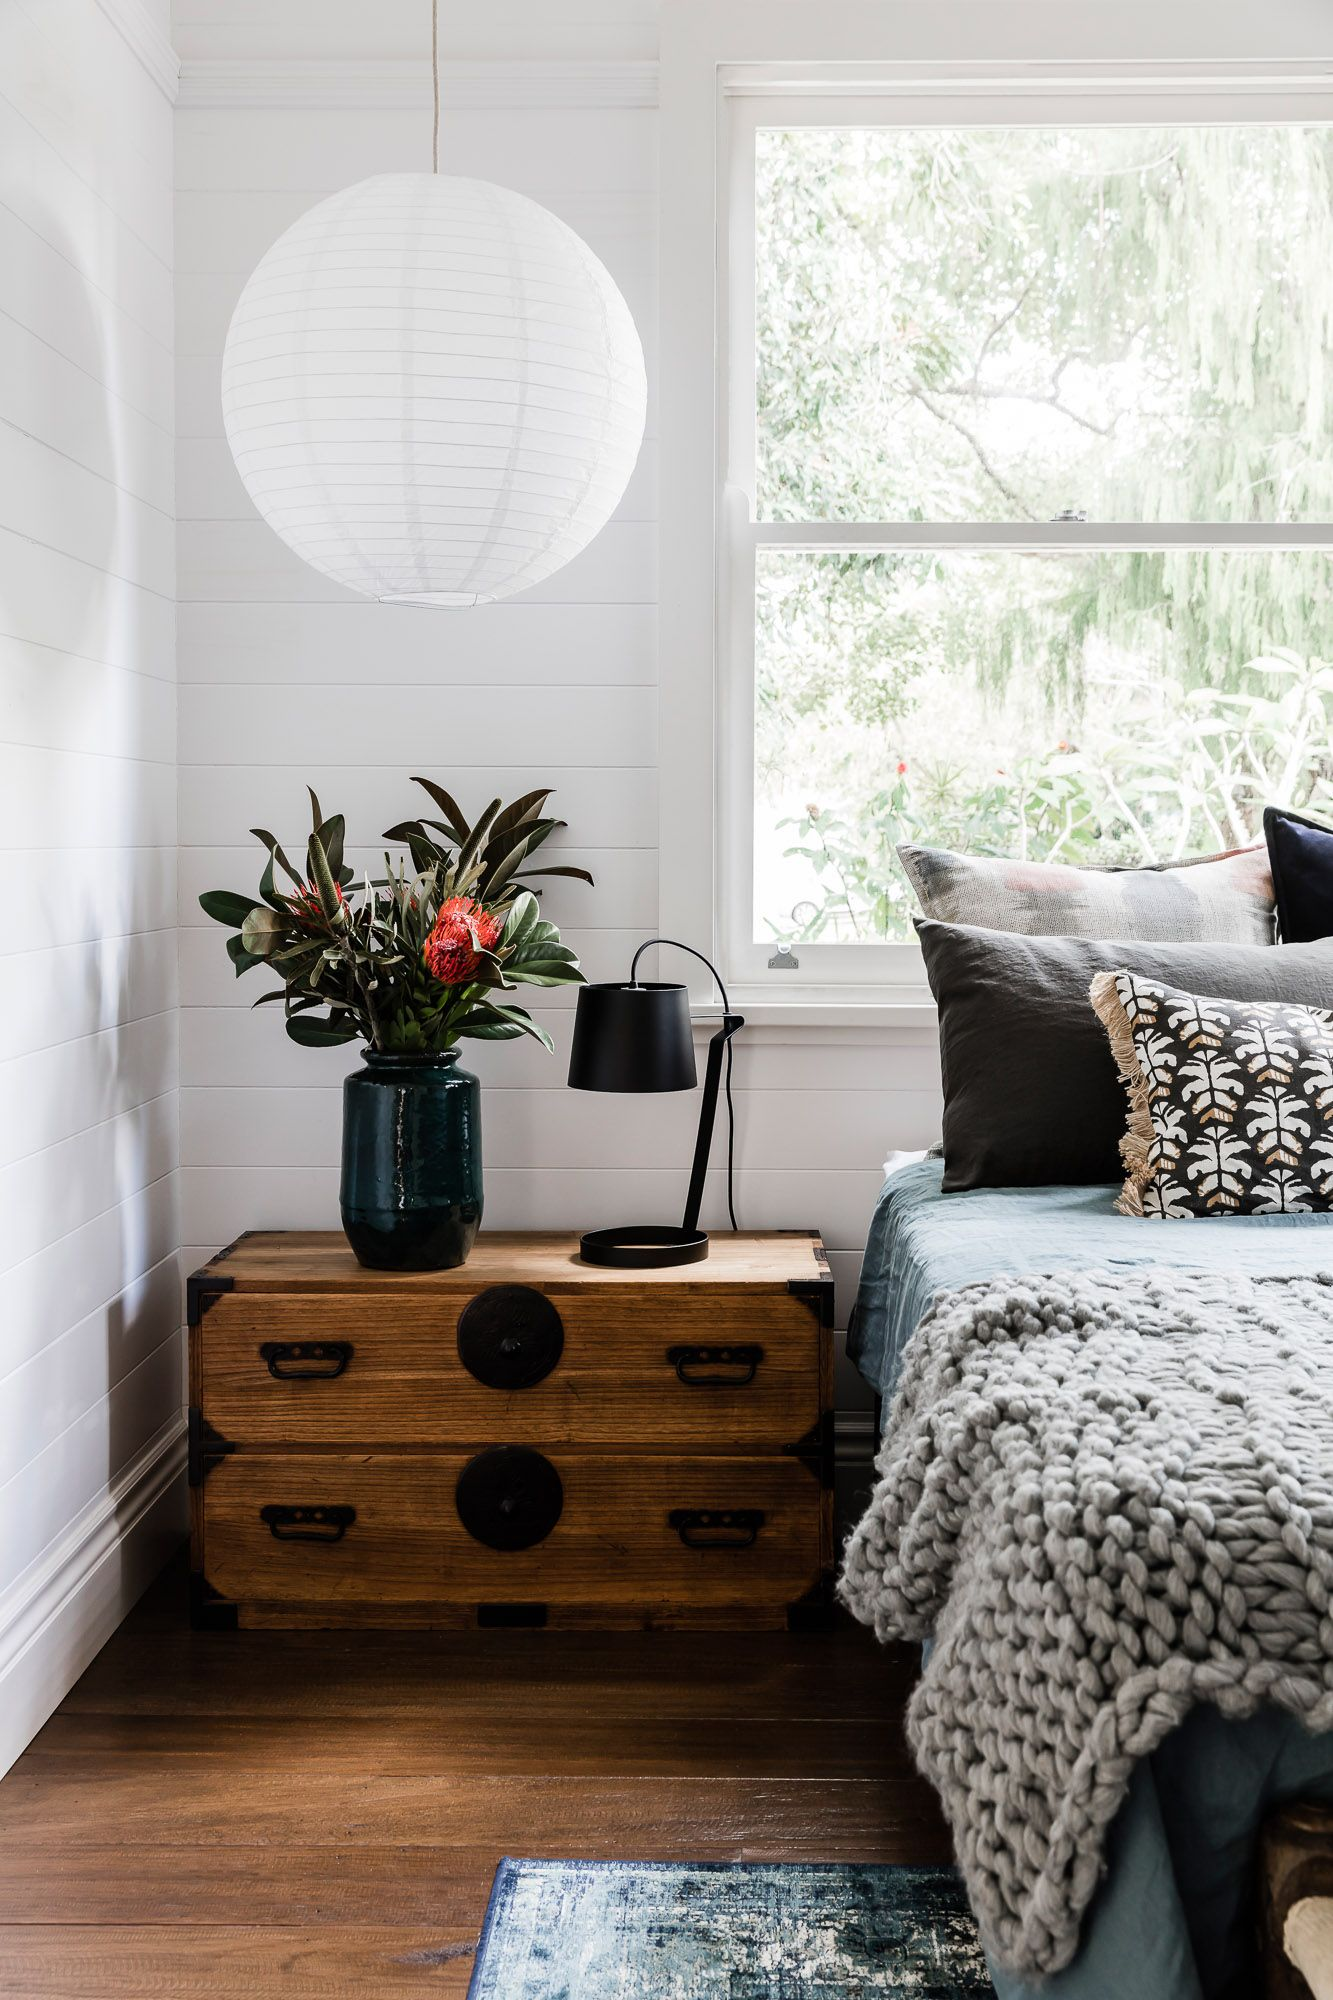 Love the subtle mix of Asian influences in this cozy modern bedroom ...